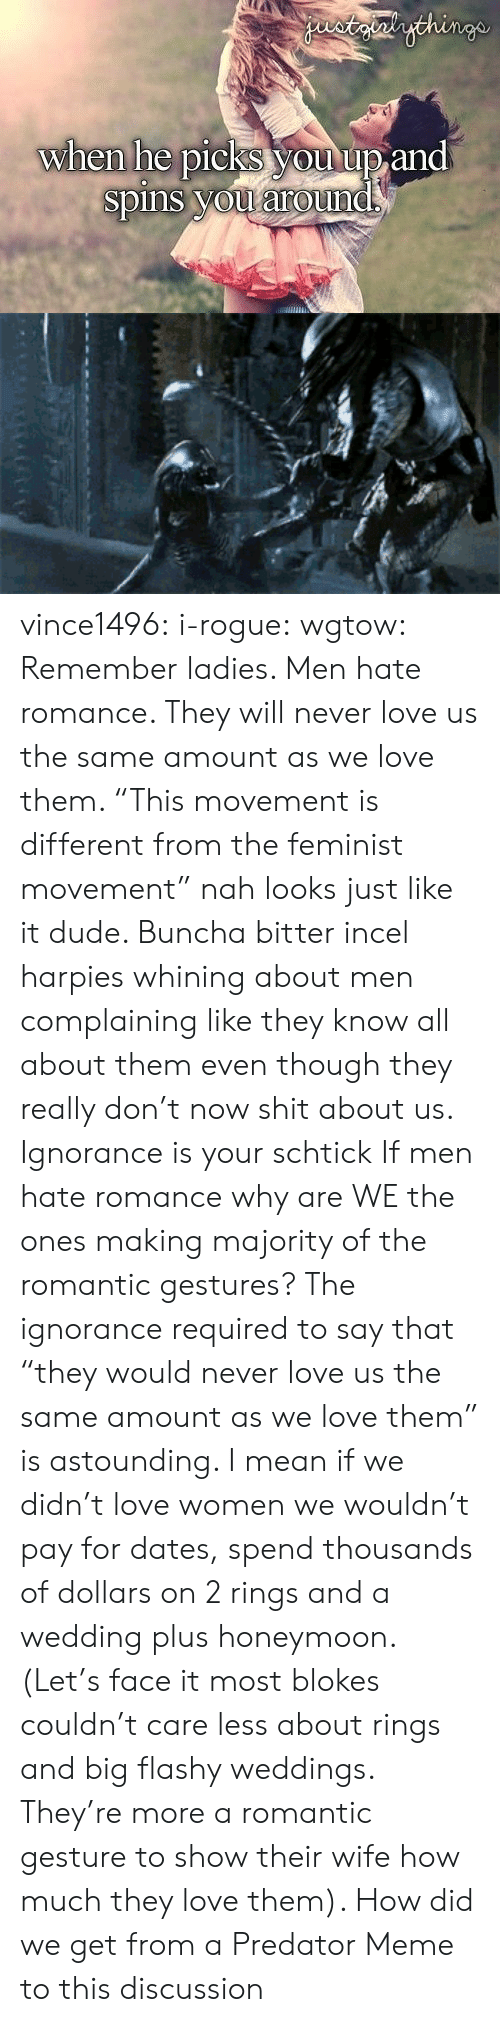 "Rogue: staialythinge  when he picks you up and  spins you around vince1496:  i-rogue:  wgtow:  Remember ladies. Men hate romance. They will never love us the same amount as we love them.   ""This movement is different from the feminist movement"" nah looks just like it dude. Buncha bitter incel harpies whining about men complaining like they know all about them even though they really don't now shit about us. Ignorance is your schtick  If men hate romance why are WE the ones making majority of the romantic gestures? The ignorance required to say that ""they would never love us the same amount as we love them"" is astounding. I mean if we didn't love women we wouldn't pay for dates, spend thousands of dollars on 2 rings and a wedding plus honeymoon. (Let's face it most blokes couldn't care less about rings and big flashy weddings. They're more a romantic gesture to show their wife how much they love them).   How did we get from a Predator Meme to this discussion"